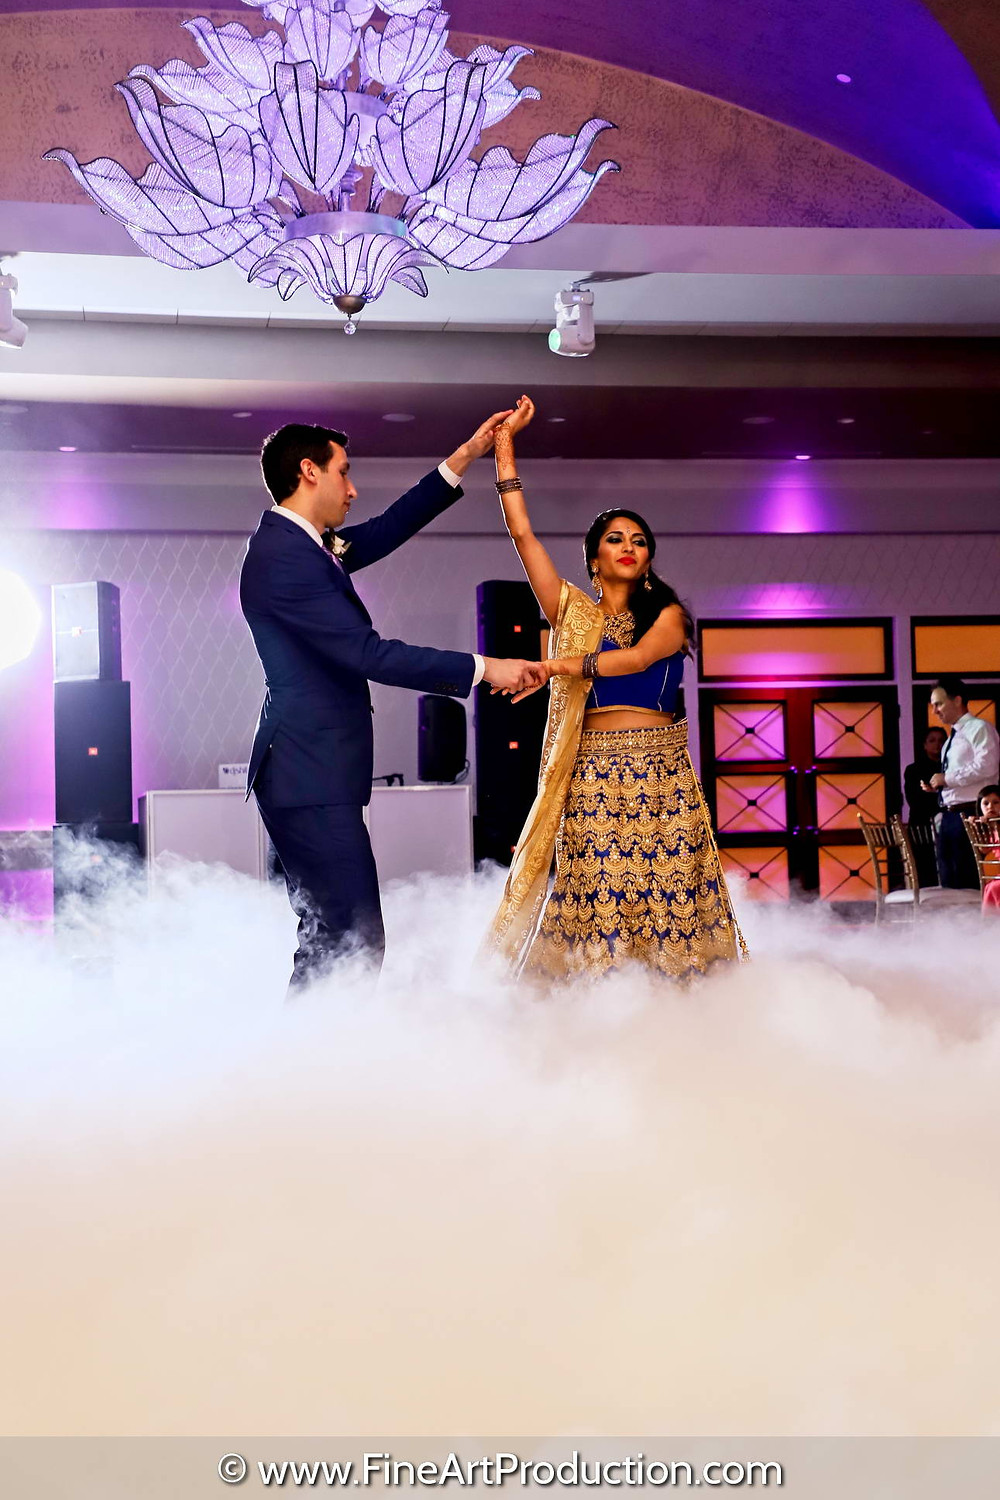 Couple doing their first dance at their wedding reception